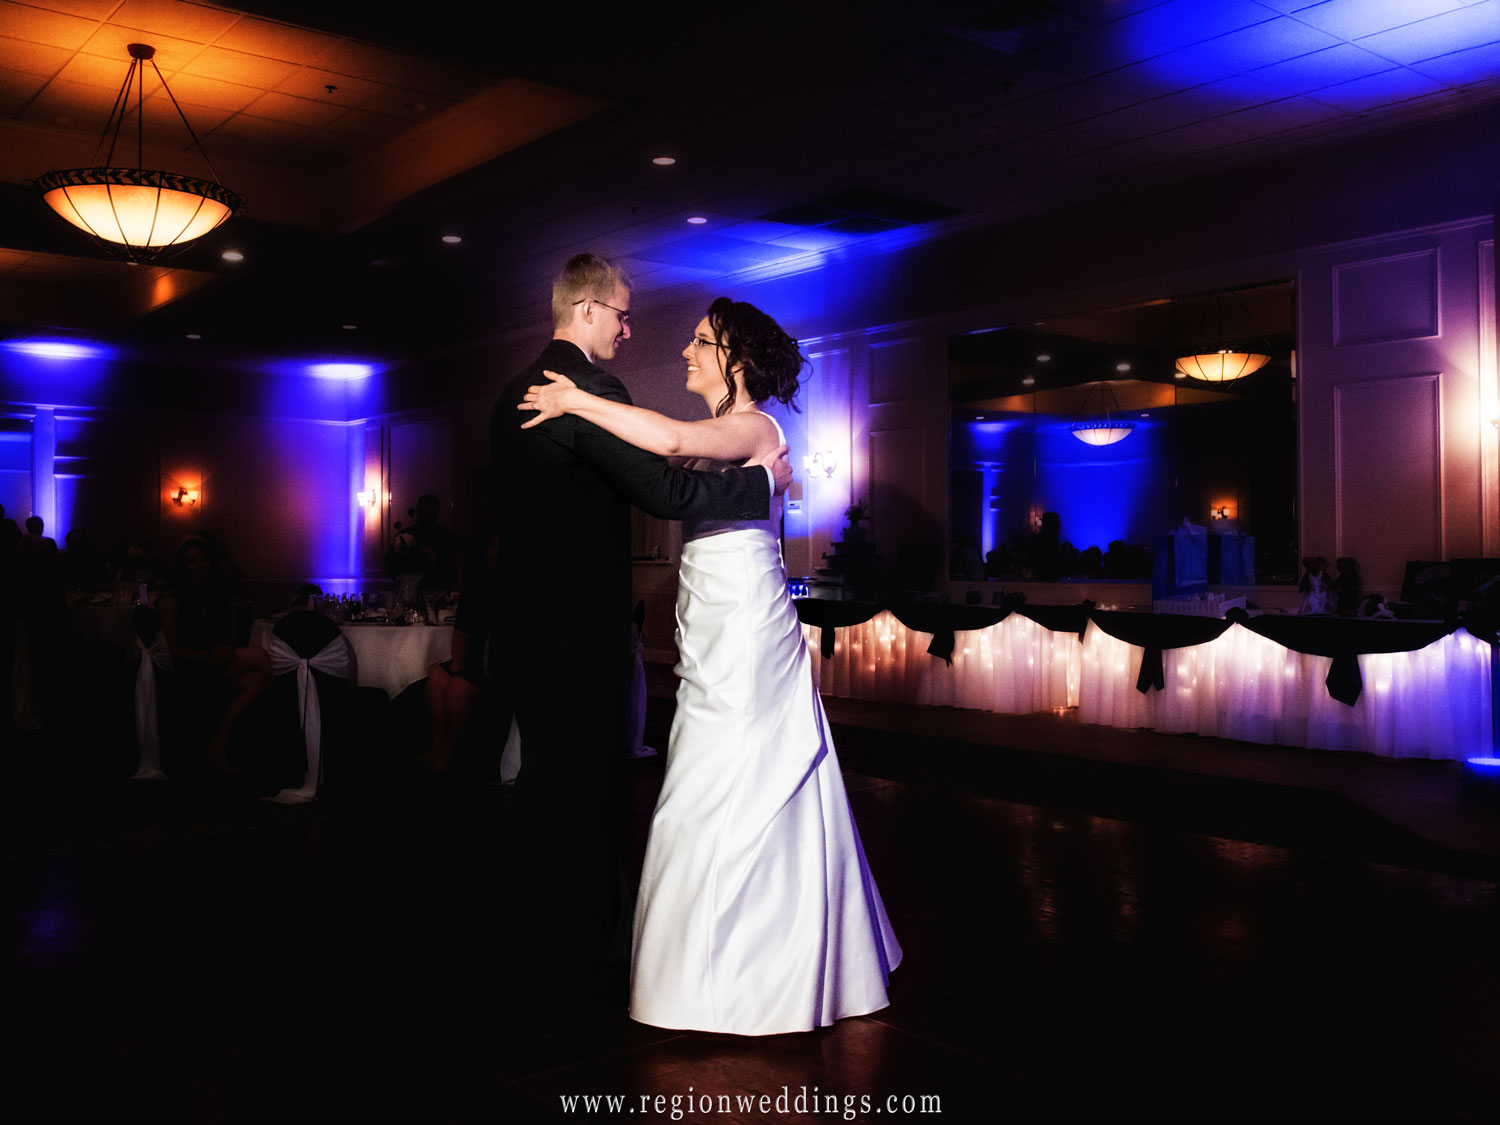 First dance at the Banquets of St. George in Schererville, Indiana